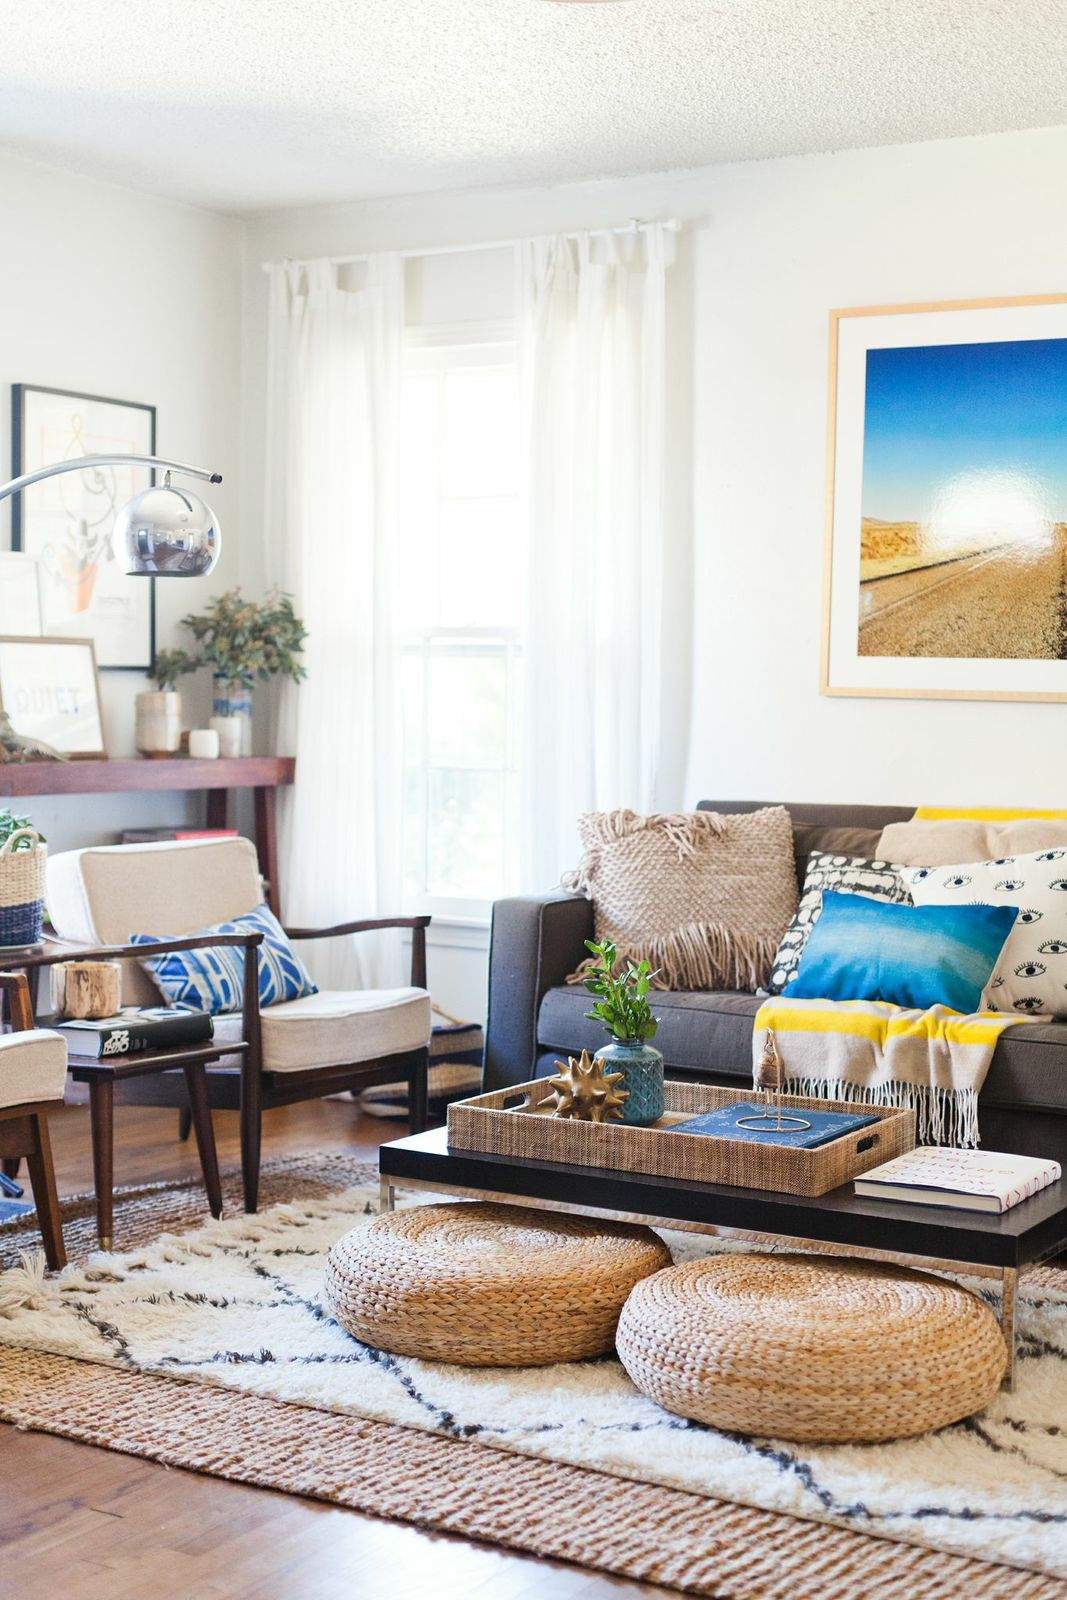 Boho Living Room with Layered Rugs